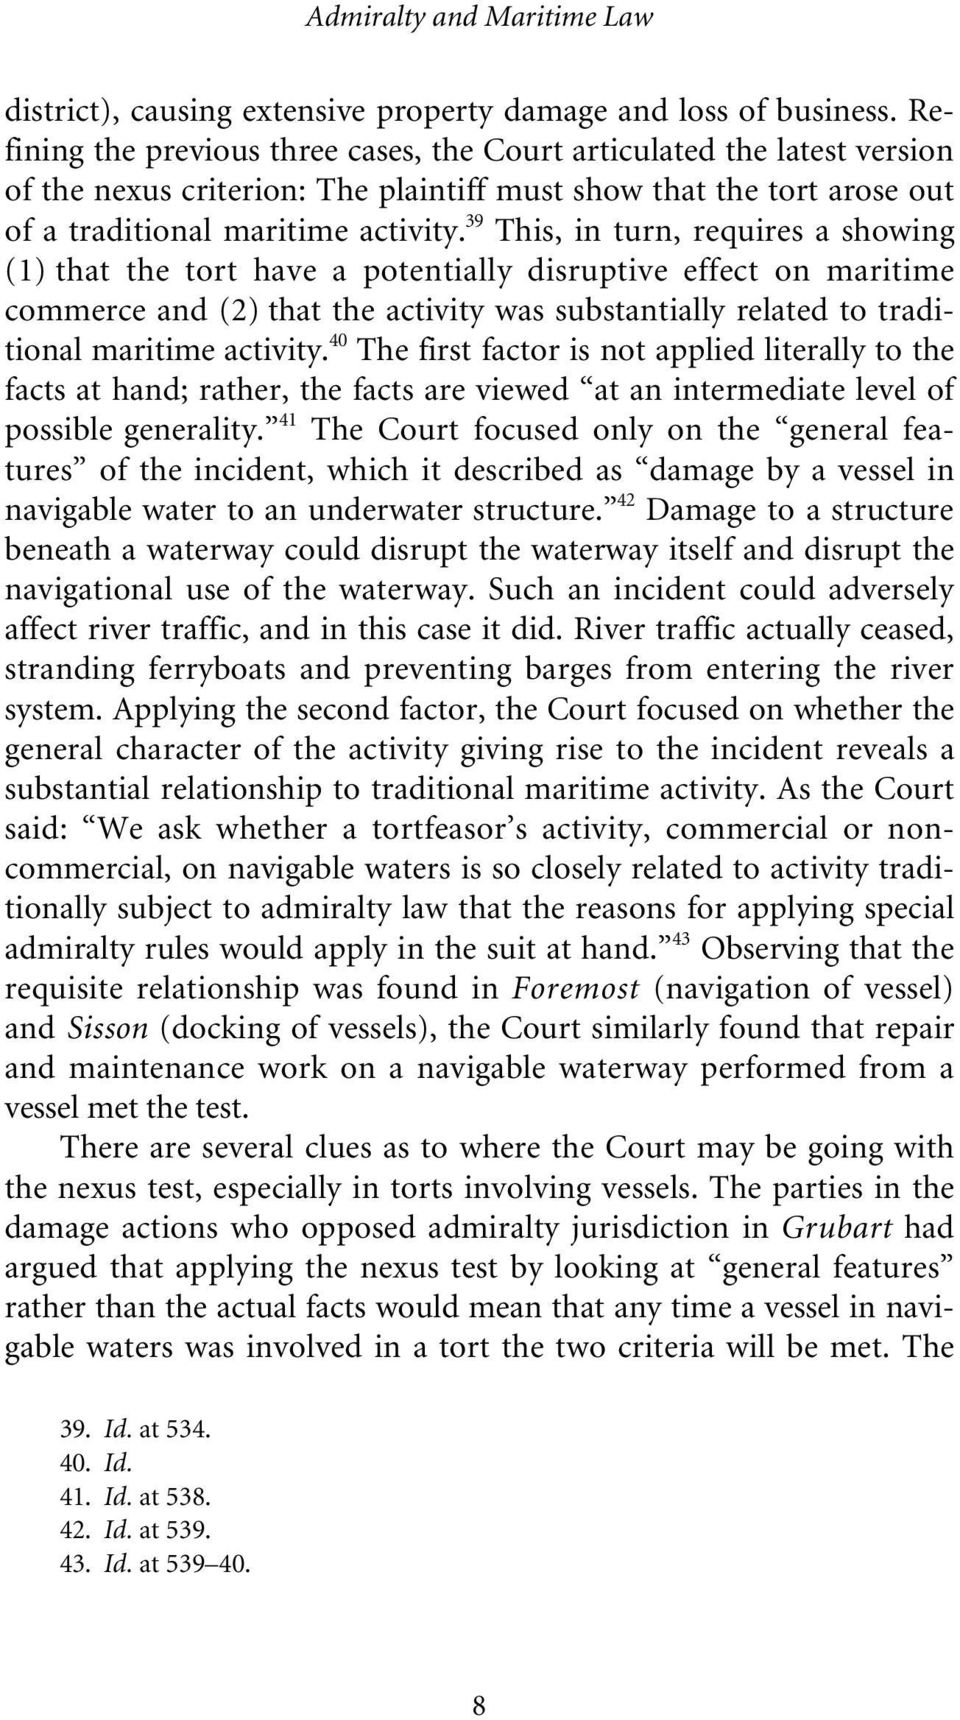 39 This, in turn, requires a showing (1) that the tort have a potentially disruptive effect on maritime commerce and (2) that the activity was substantially related to traditional maritime activity.